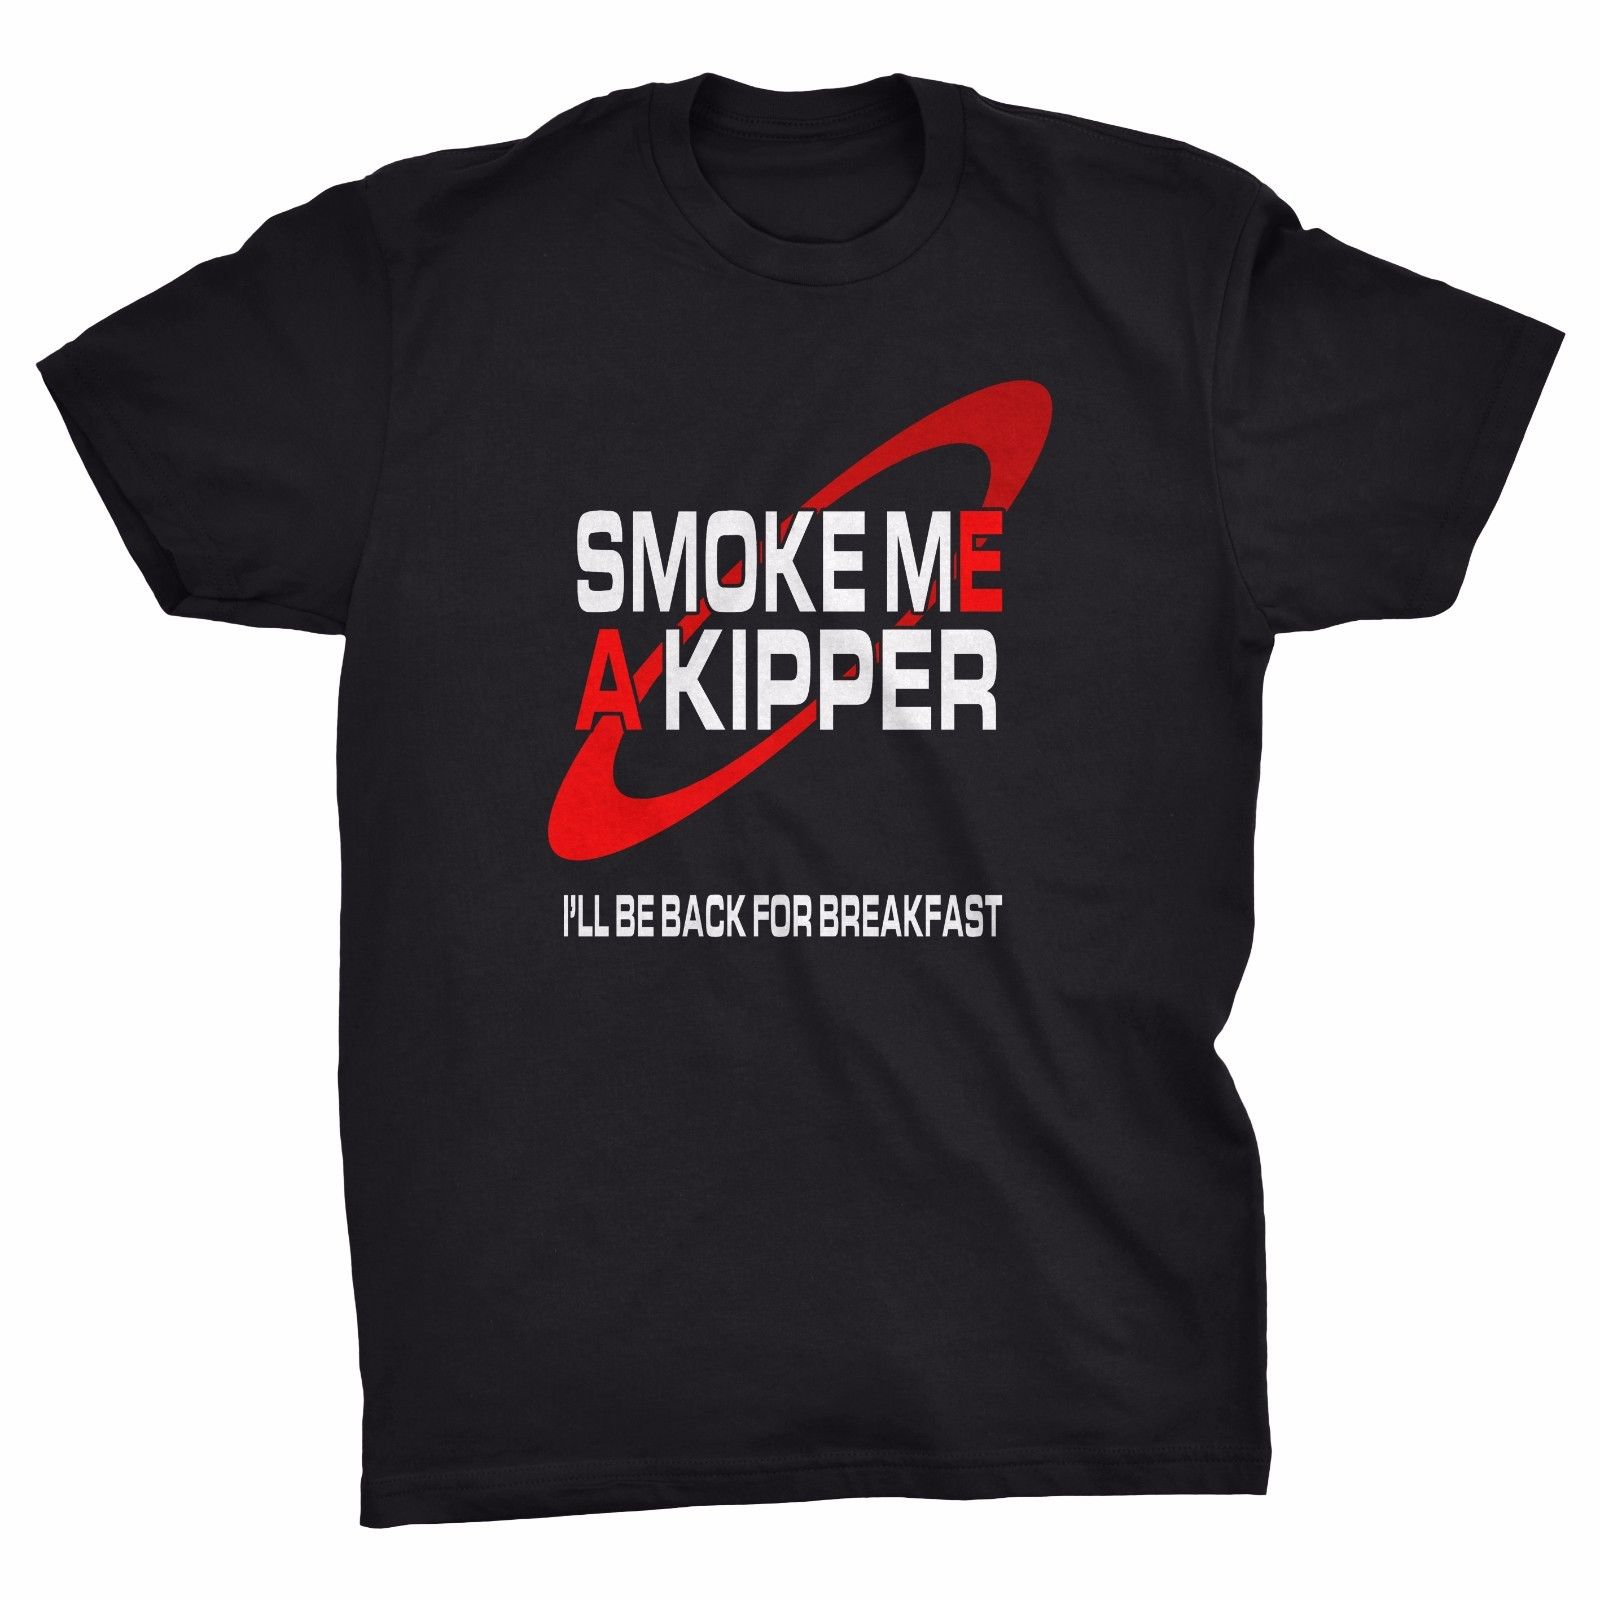 Smoke Me A Kipper T-shirt, Red Dwarf, Lister, Sci-Fi, Fathers Day, Dad, Funny Mens T Shirts Fashion 2018 Summer Tops Tees